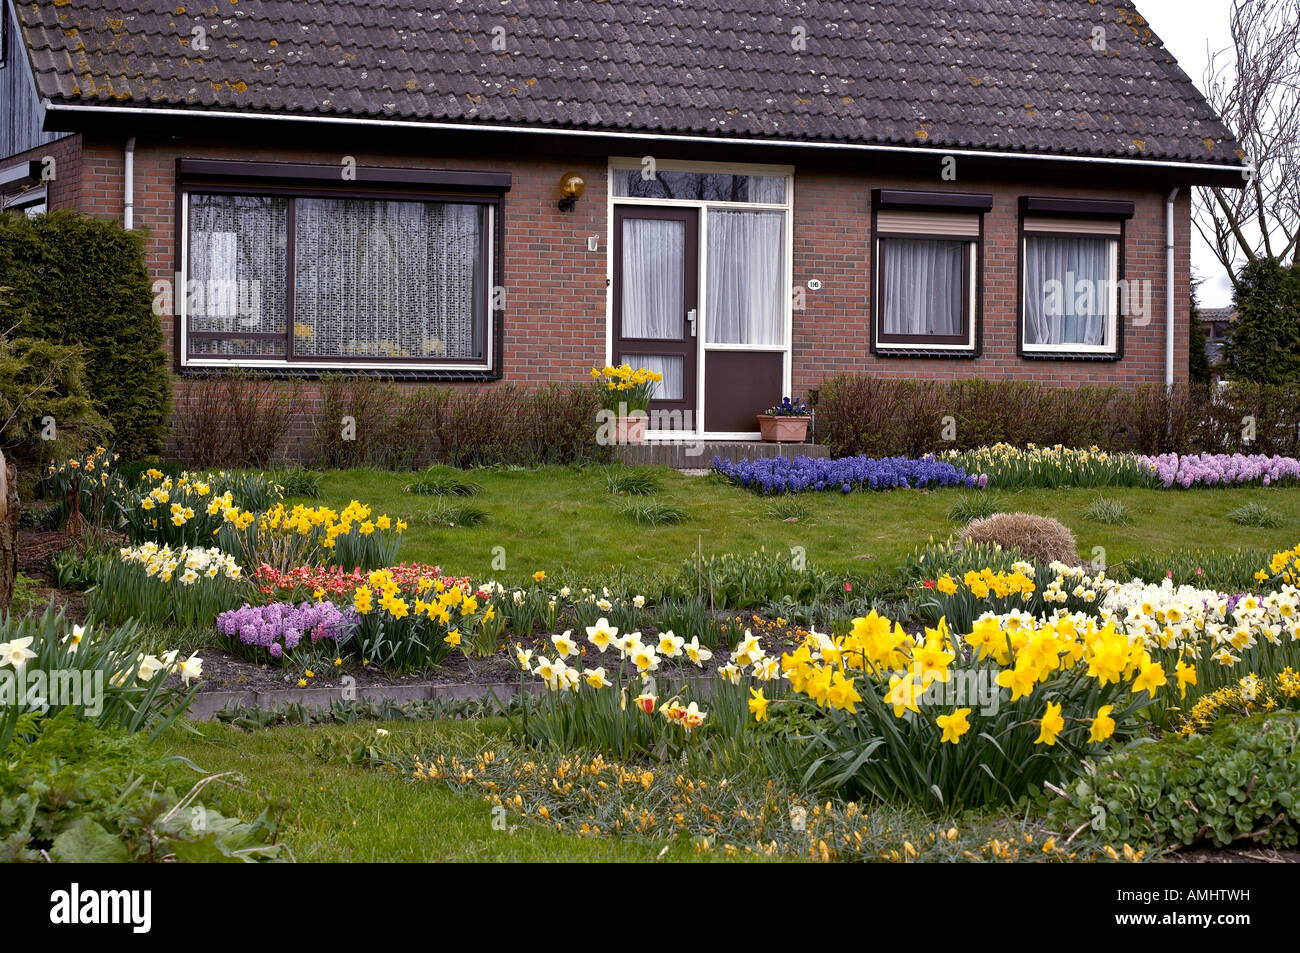 Dutch House With Flower Garden